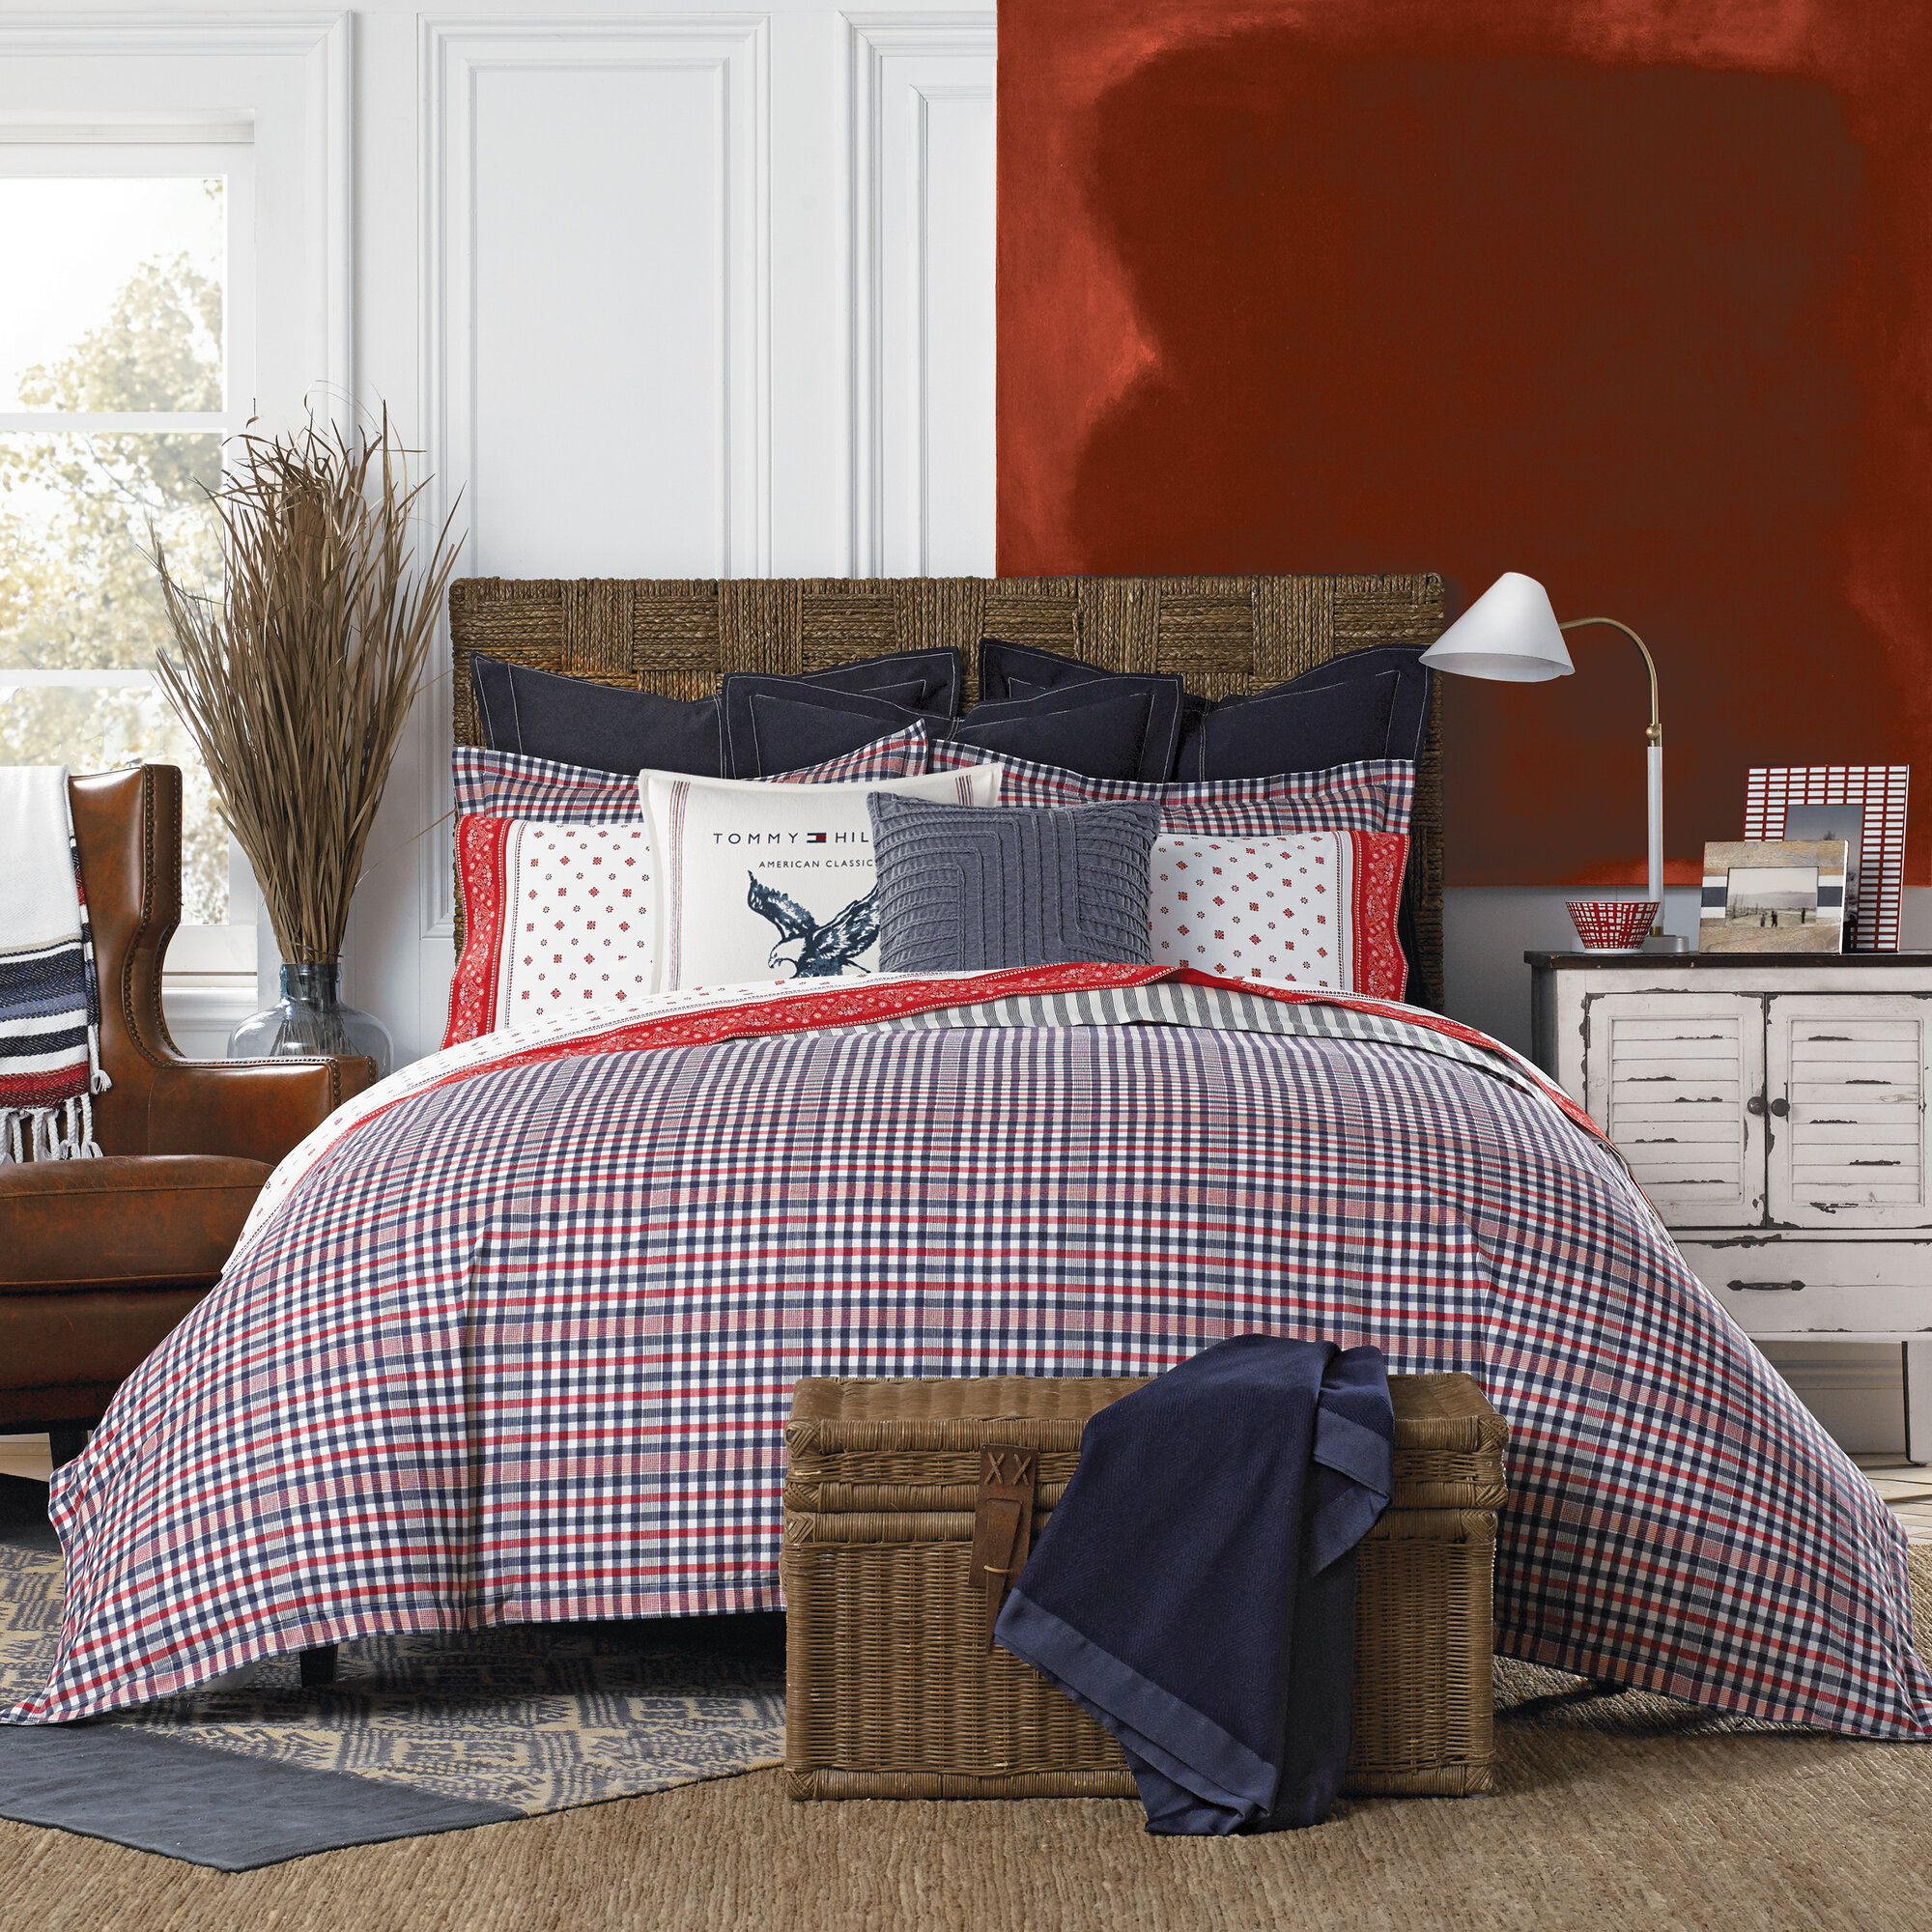 Tommy Hilfiger Timeless Plaid Comforter Set Ebay